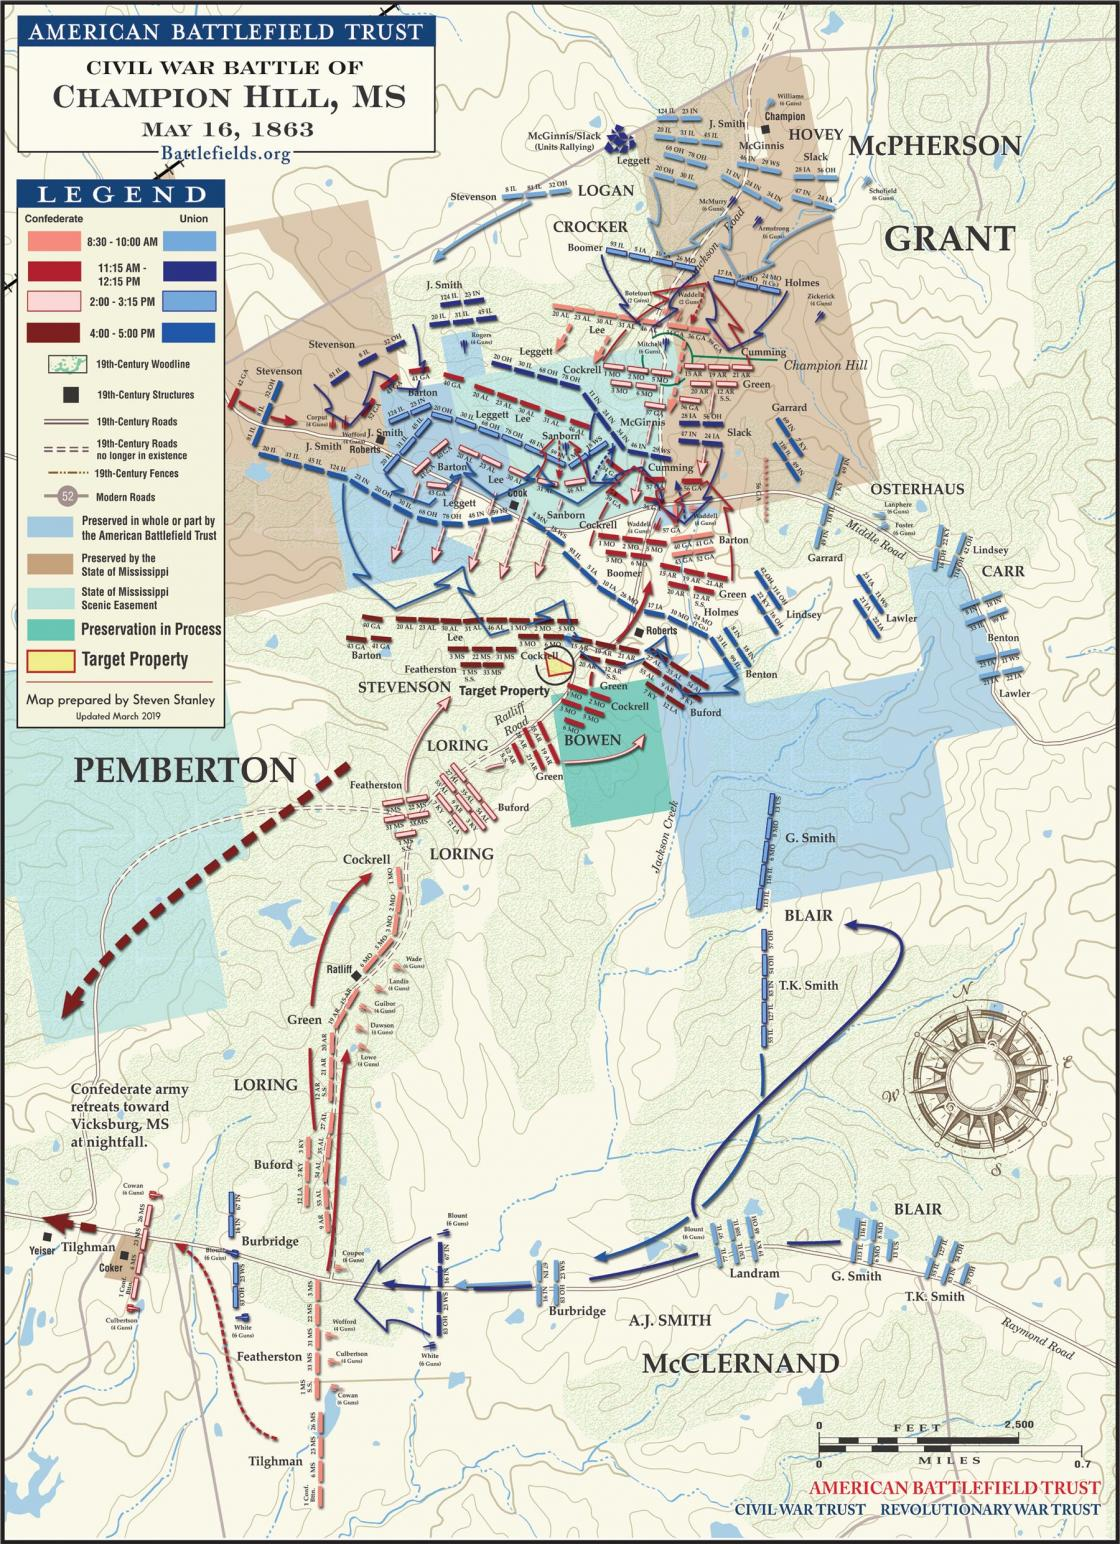 Champion Hill - May 16, 1863